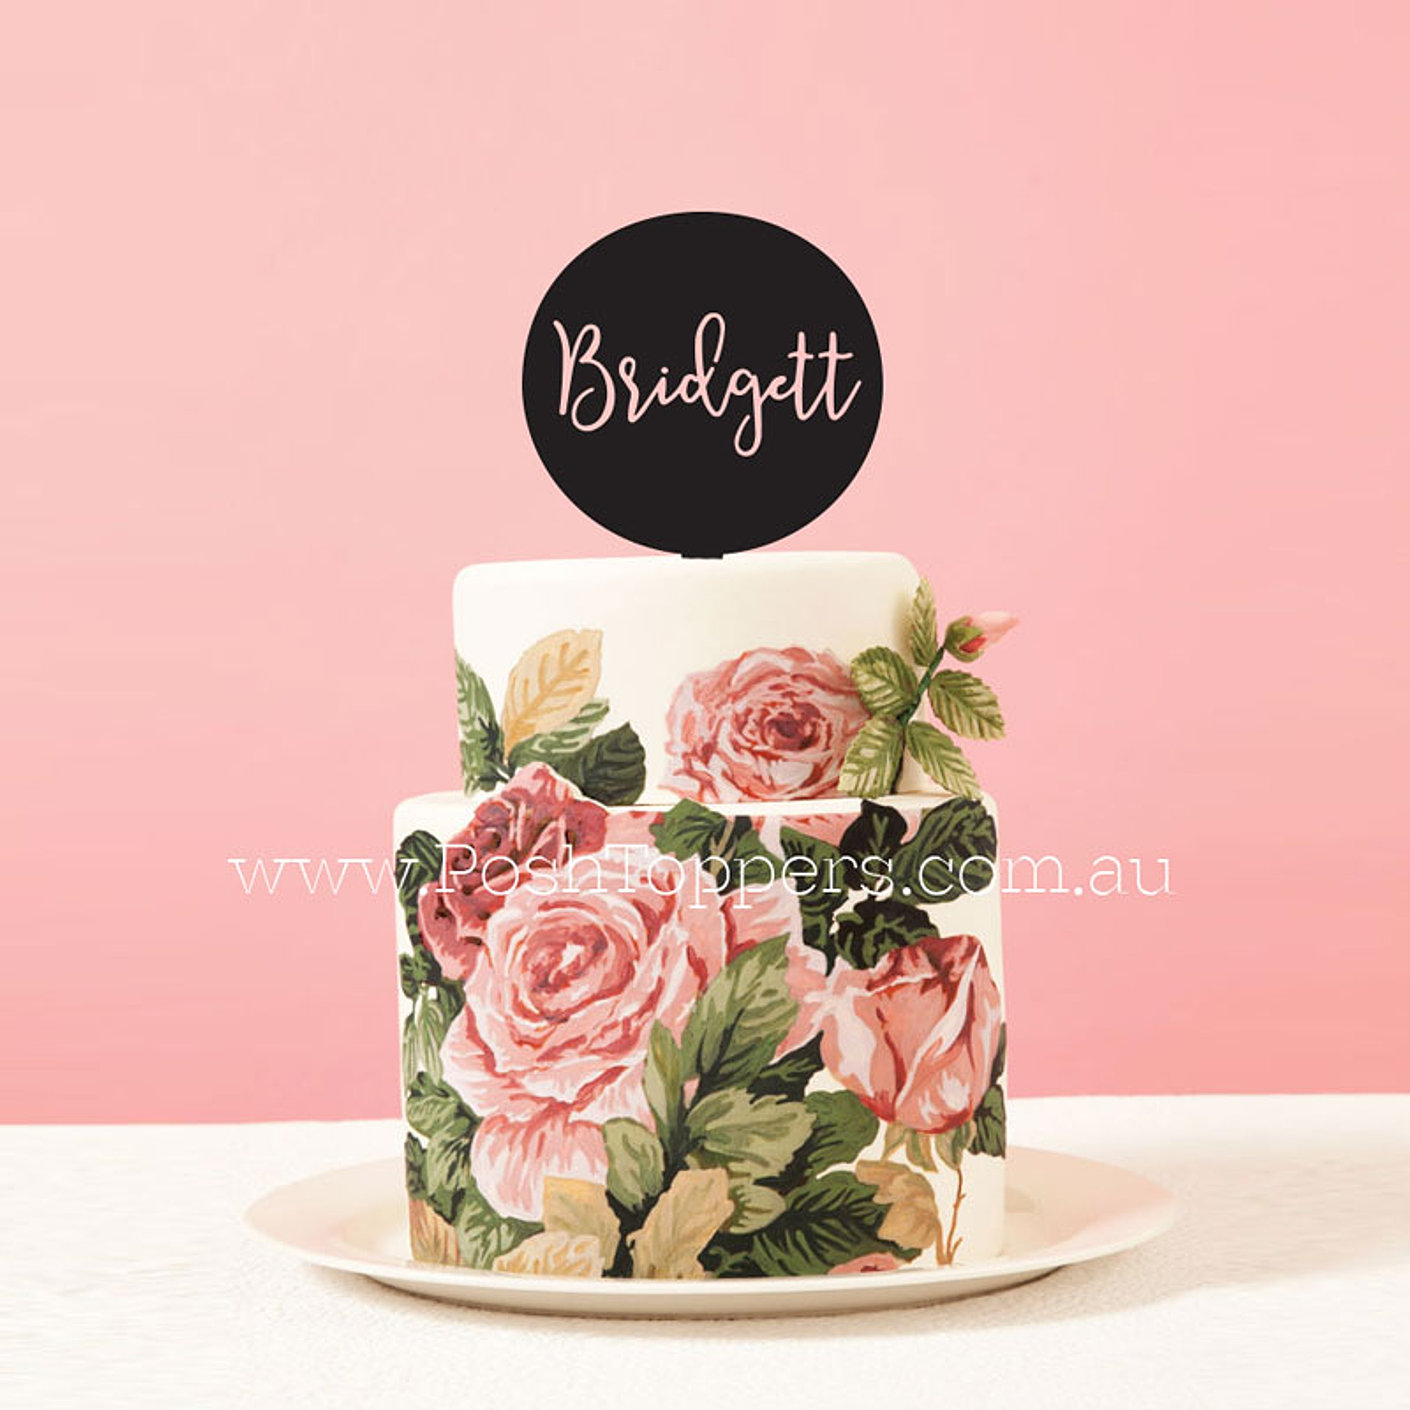 sydney wedding cake toppers cake toppers australia wedding engagement birthday 20720